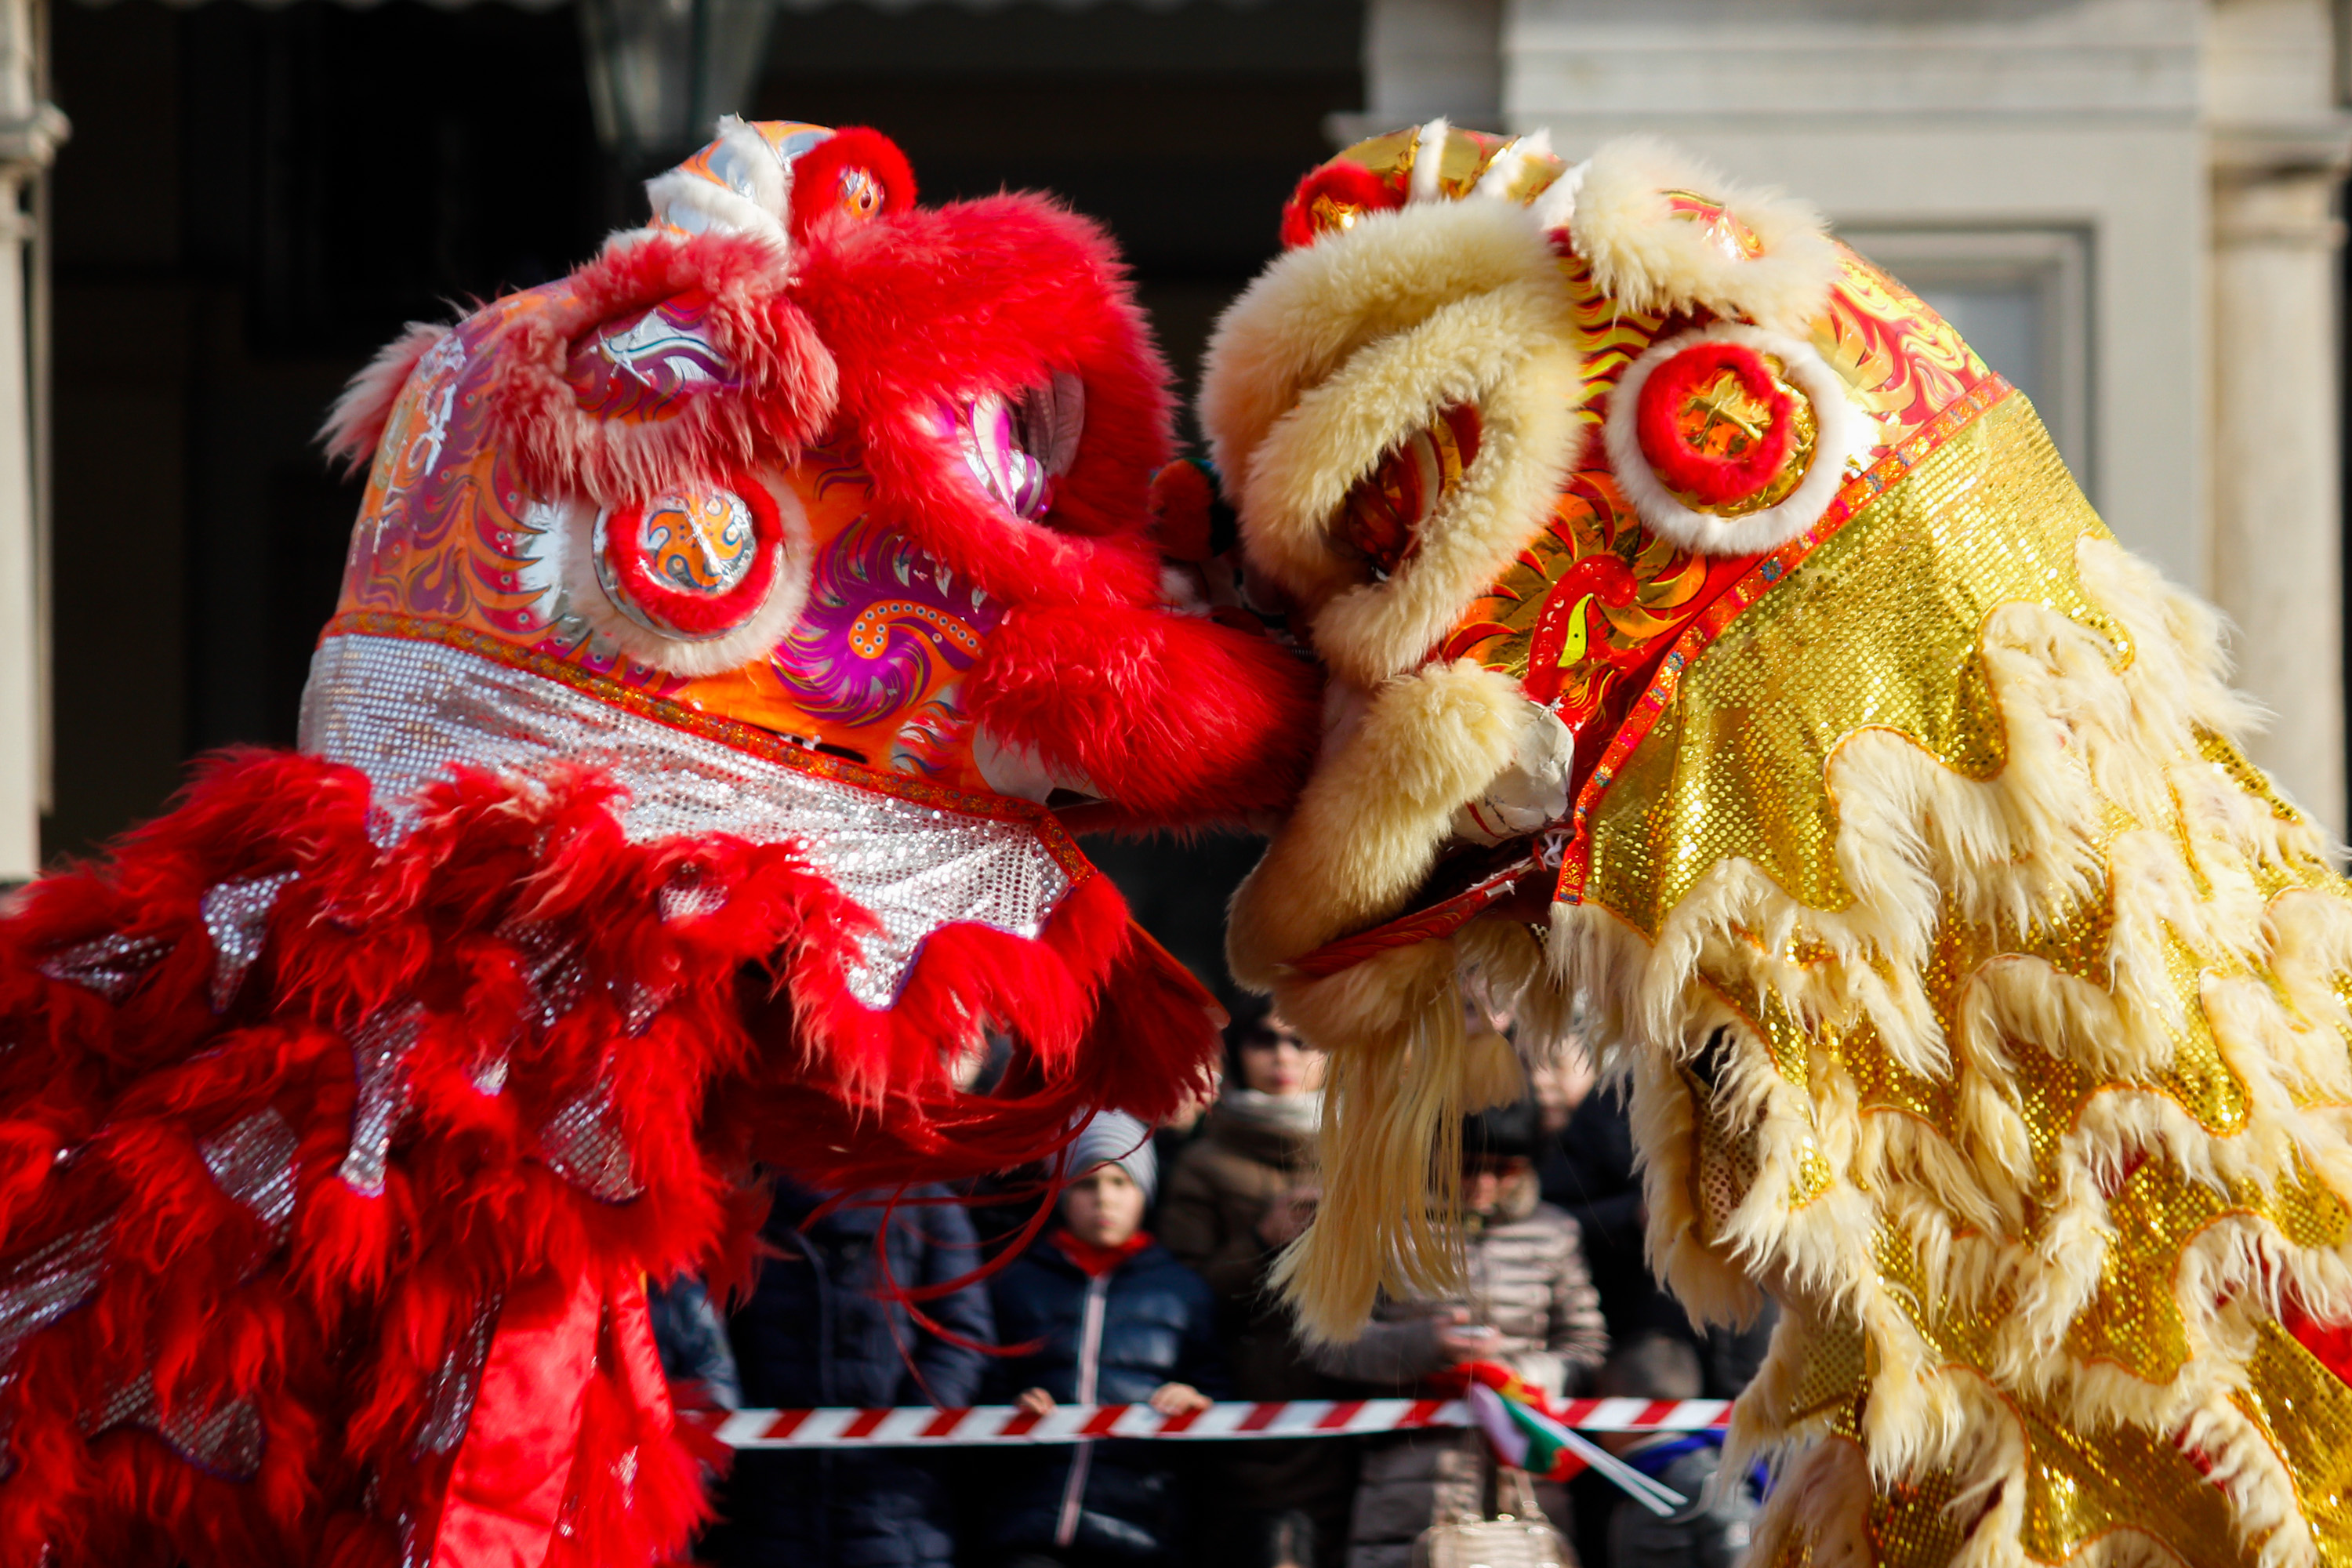 The famous dance of the dragon on the streets of downtown Turin, Italy during the Festival of the Chinese New Year on February 8, 2015. Photo by Elena Aquila/Pacific Press/LightRocket via Getty Images.